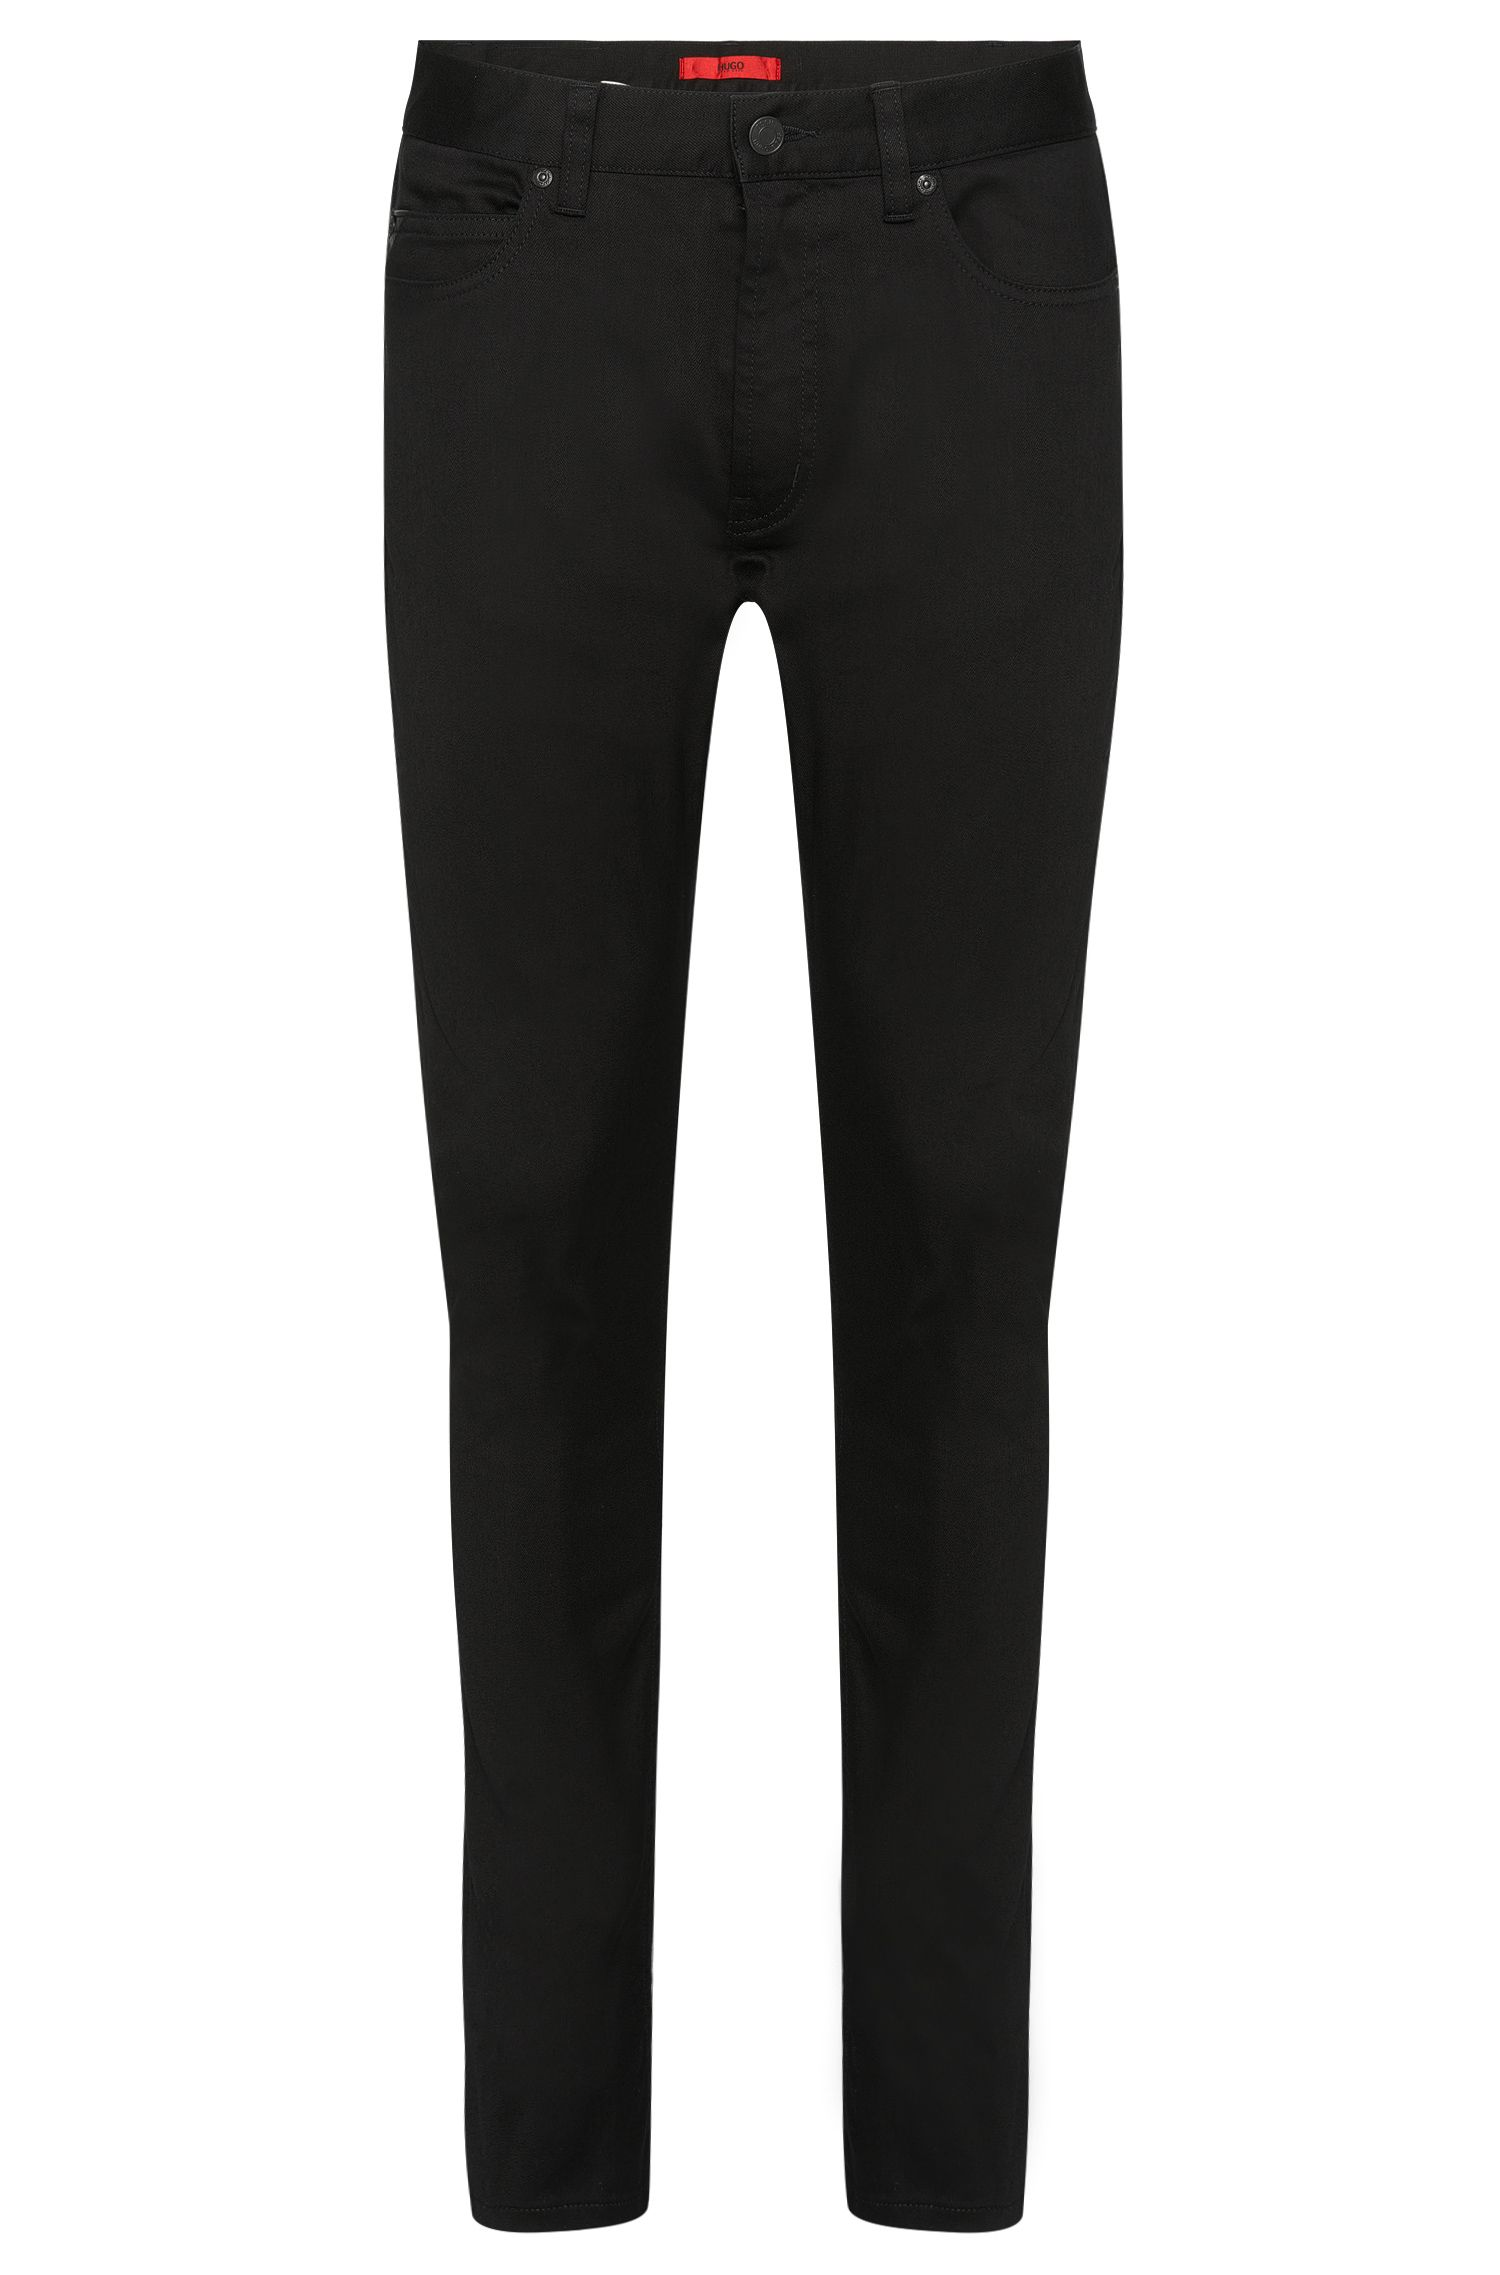 Skinny-Fit Jeans aus Stretch-Baumwolle mit Details in Leder-Optik: 'Hugo 734/35'